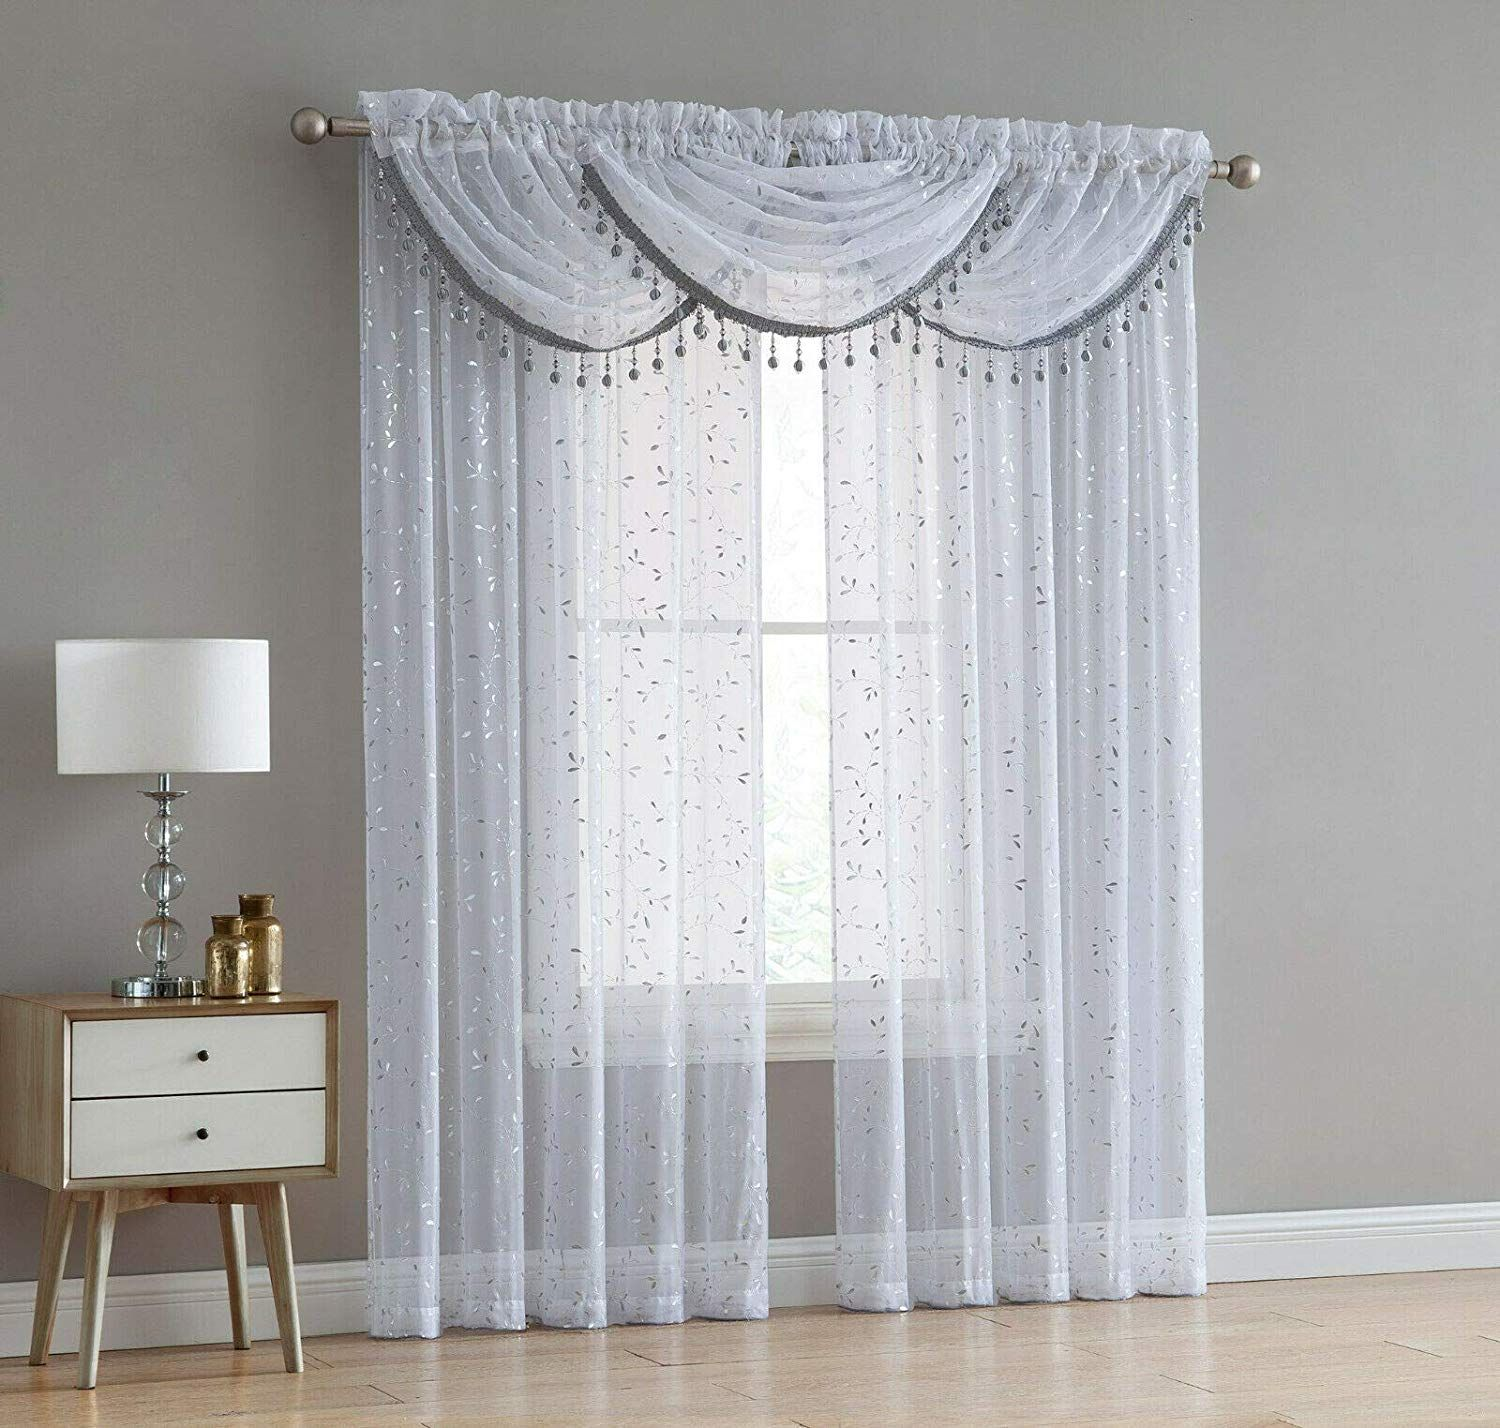 Adeline 5 Piece Sheer Curtain Set With Beaded Austrian Valances And Foil Metallic Design White Silver Walmart Com In 2020 Sheers Curtains Living Room Silver Curtains Sheer Curtain #silver #curtains #for #living #room